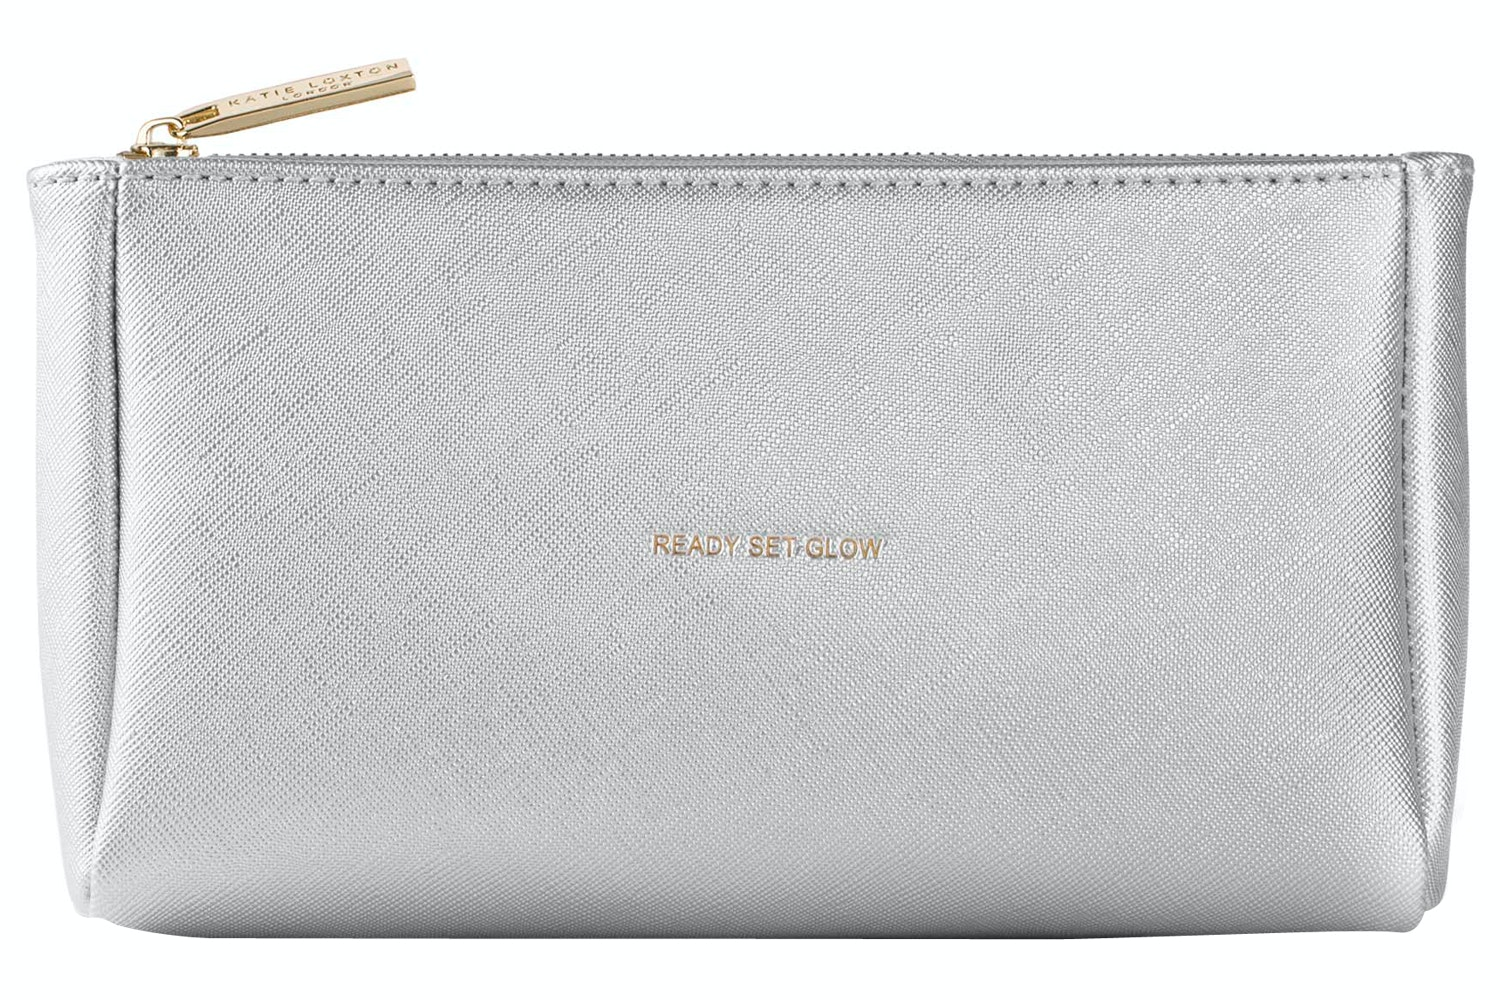 Make-Up Bag | Ready Set Glow